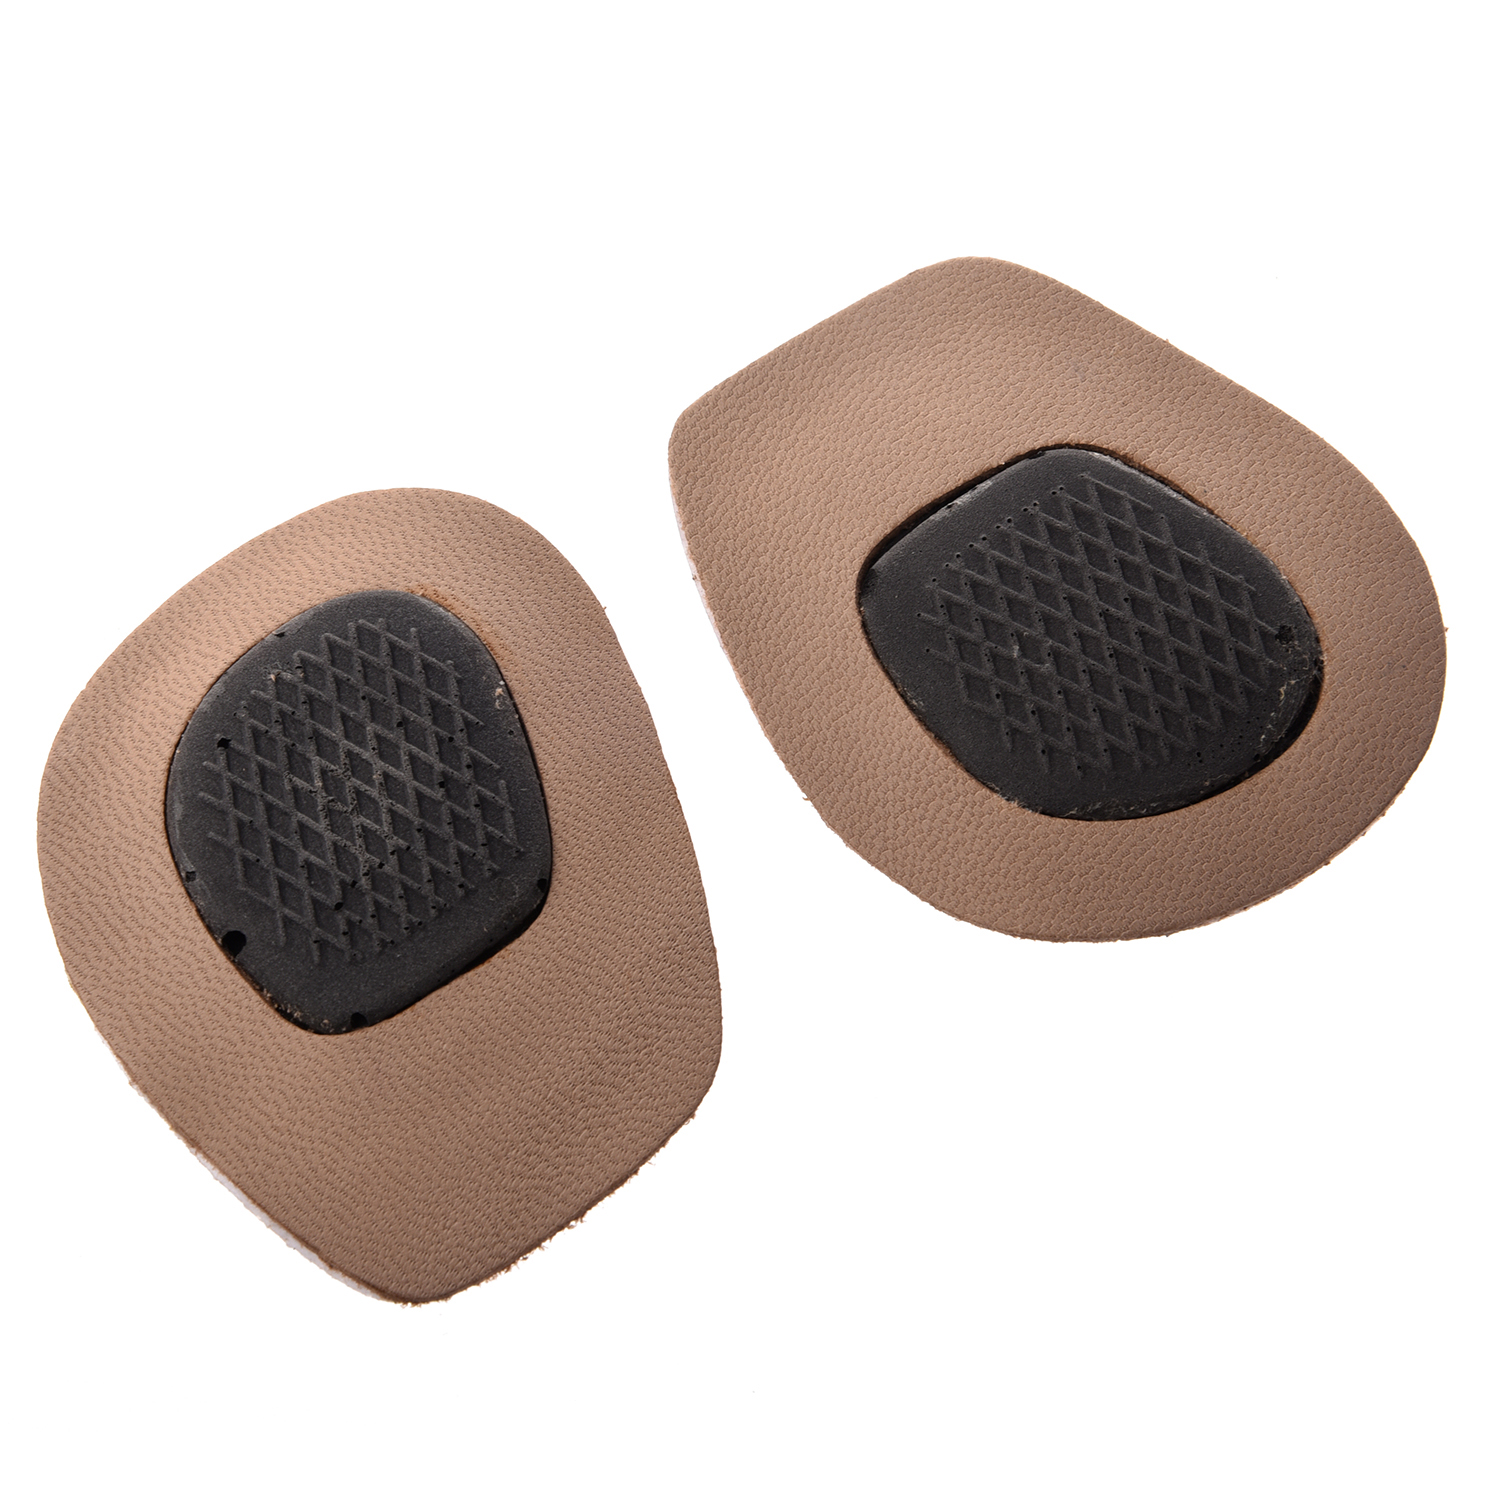 VSEN 2X 1 pair Back Half-Insoles for Shoes with High Heels: One Size